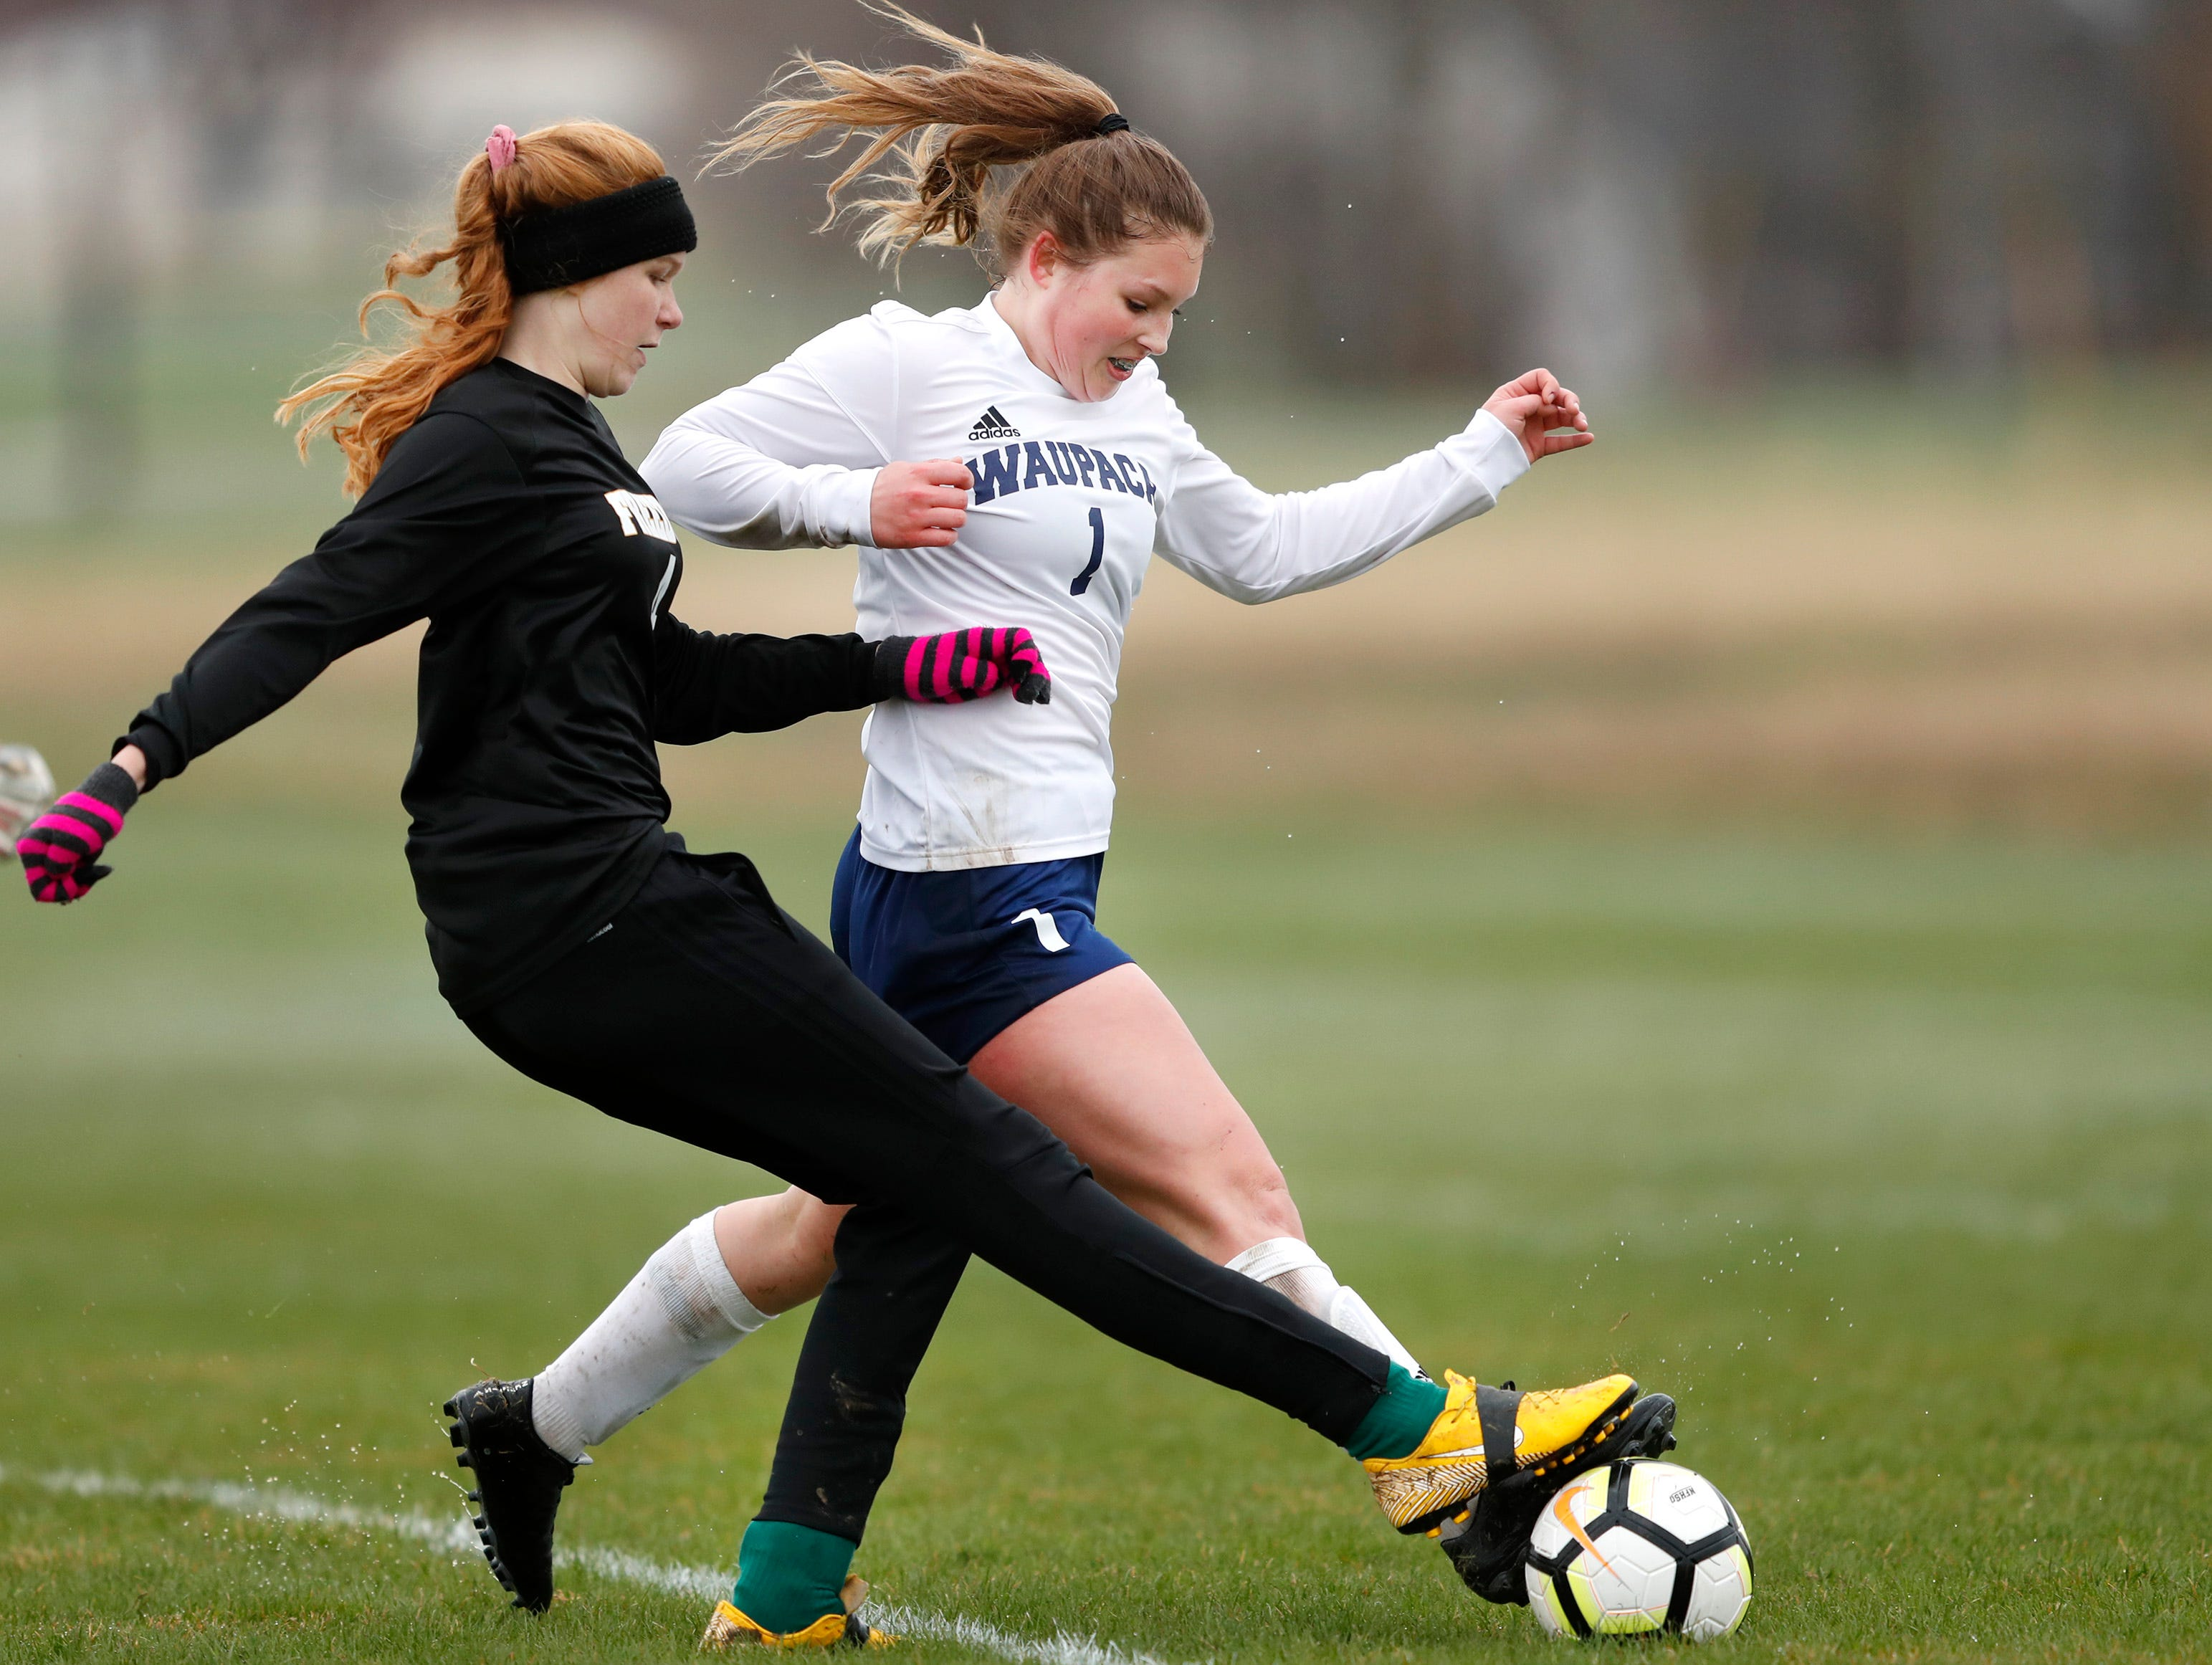 Waupaca High School's Autumn Wennesberg gets a foot to the ball as she defends an open net against Freedom High School's Hailey Weyenberg Monday, April 29, 2019, in Freedom, Wis. Danny Damiani/USA TODAY NETWORK-Wisconsin